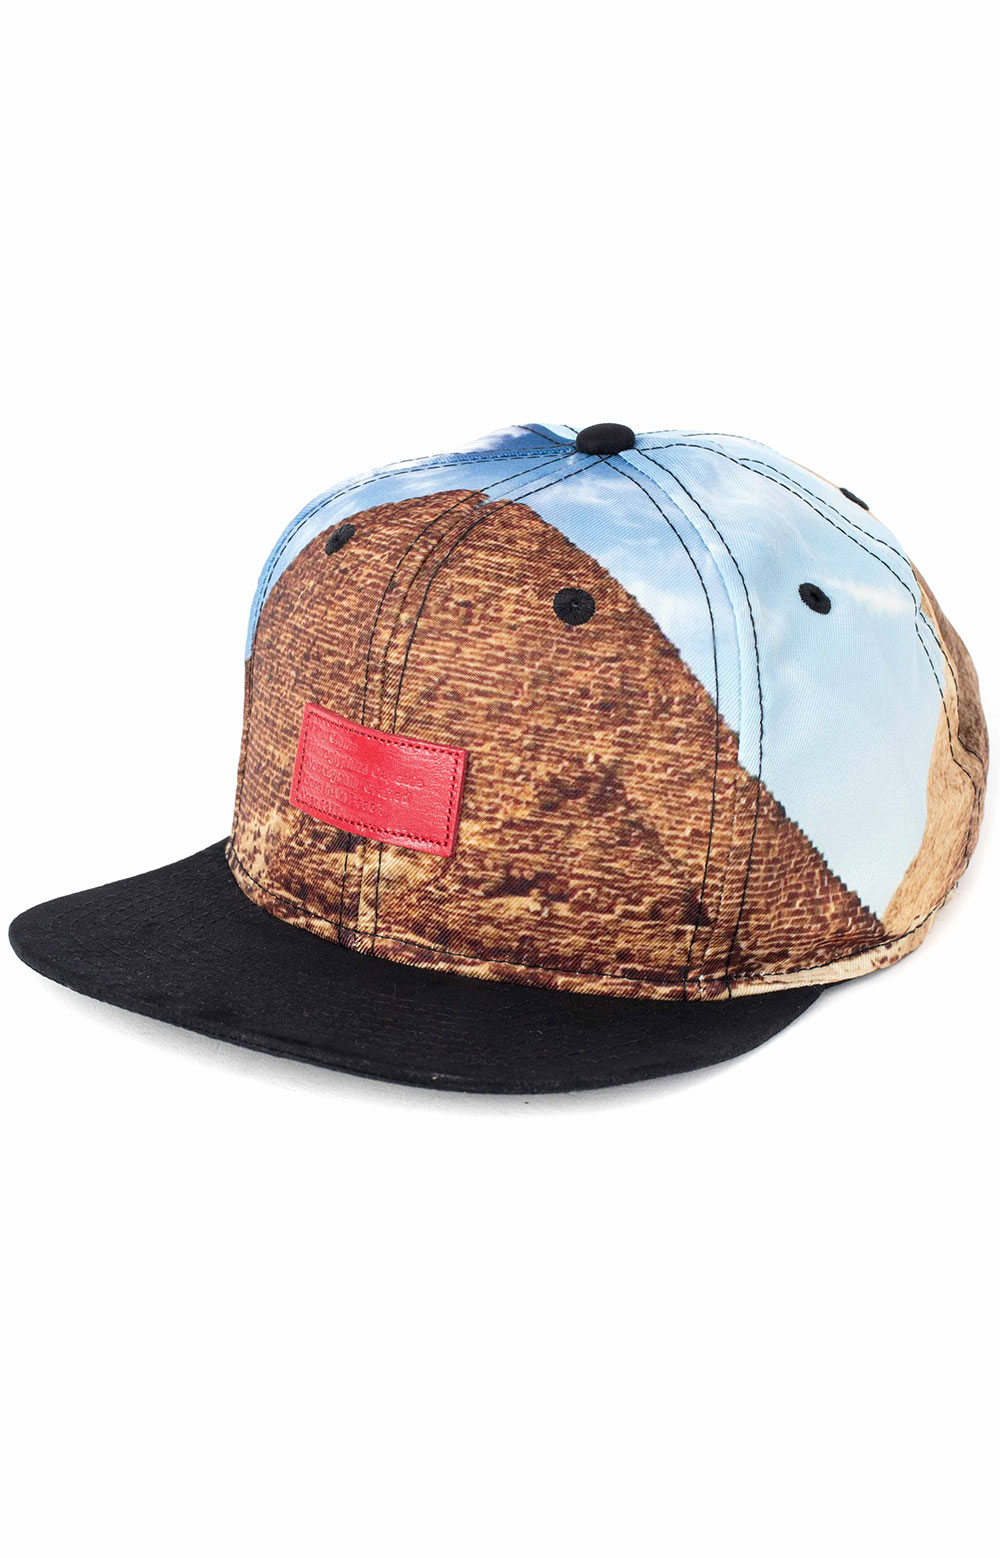 Kngs Tomb Strap-Back Hat